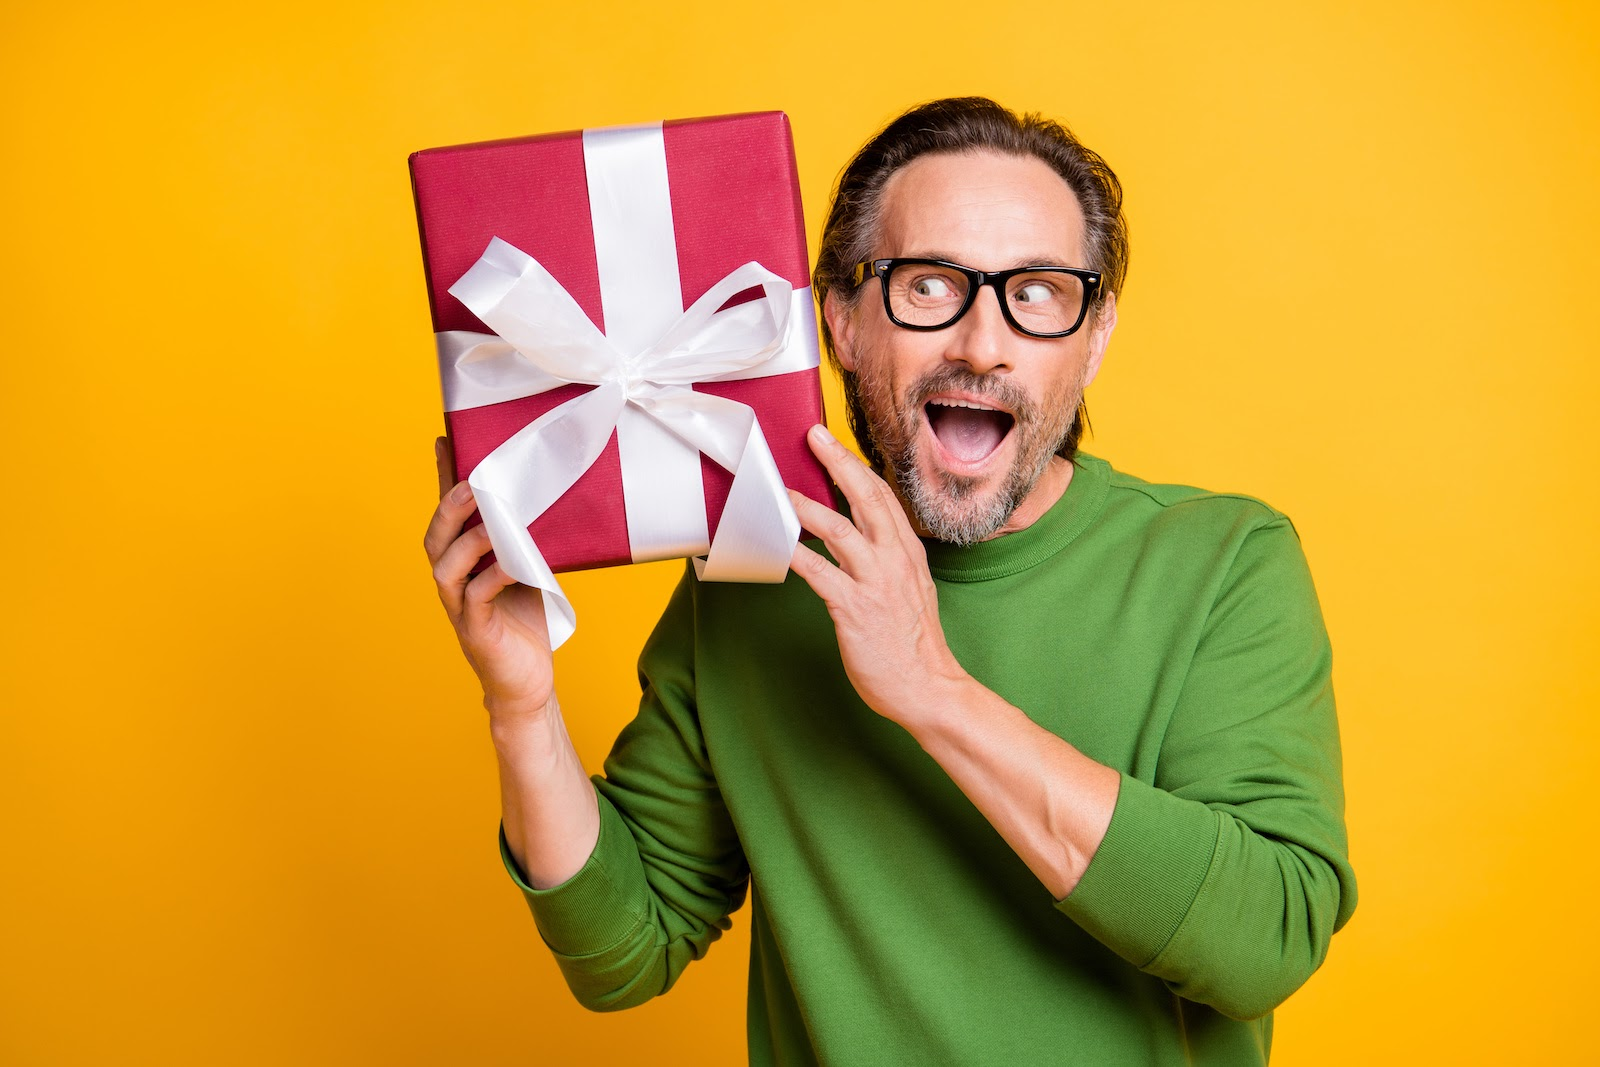 An employee holds a gift box containing a surprise corporate gift idea